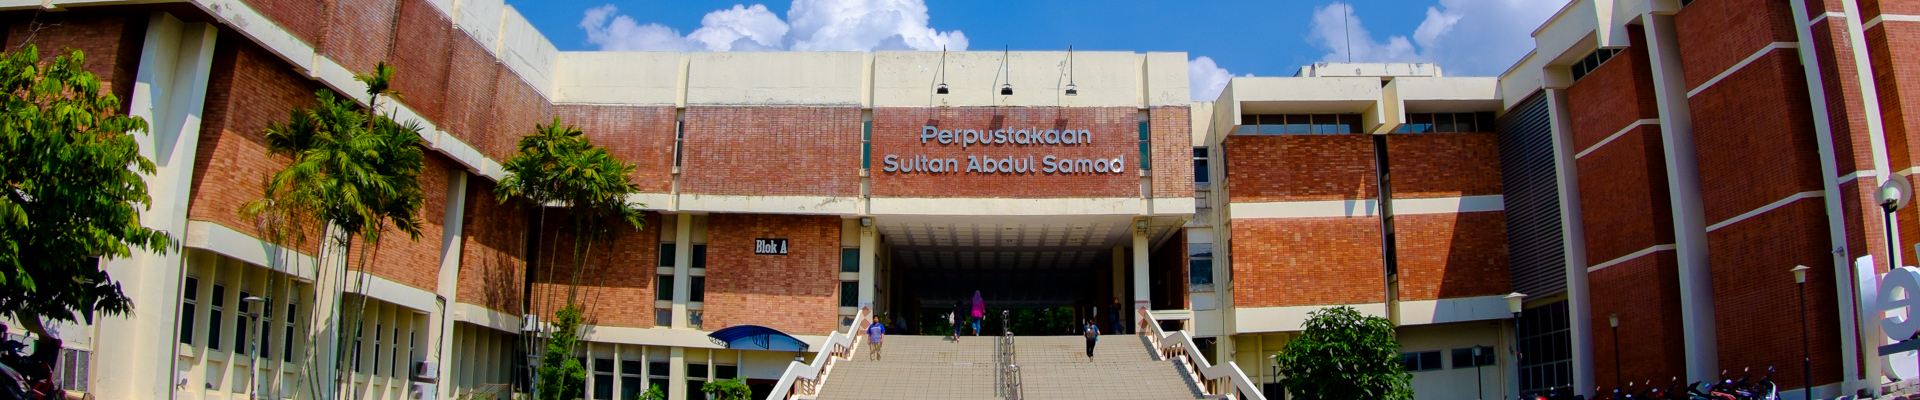 Sultan Abdul Samad Library Psas Upm Centre Of Foundation Studies For Agricultural Science